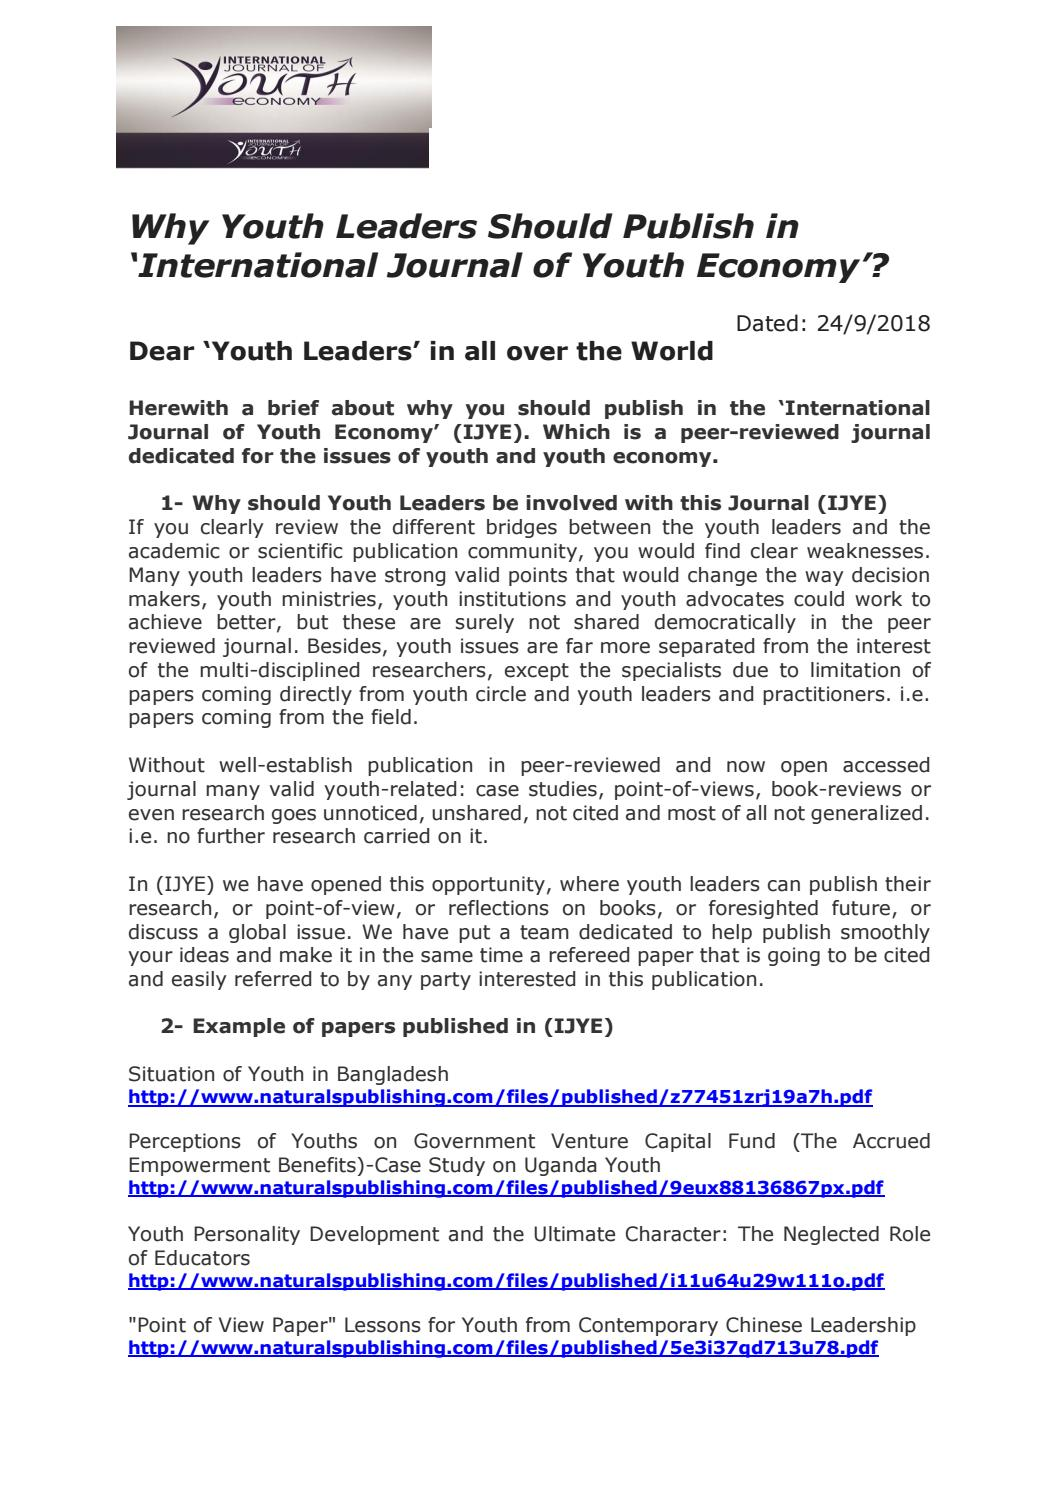 002 Page 1 How To Get Research Paper Published In International Frightening Journal Full